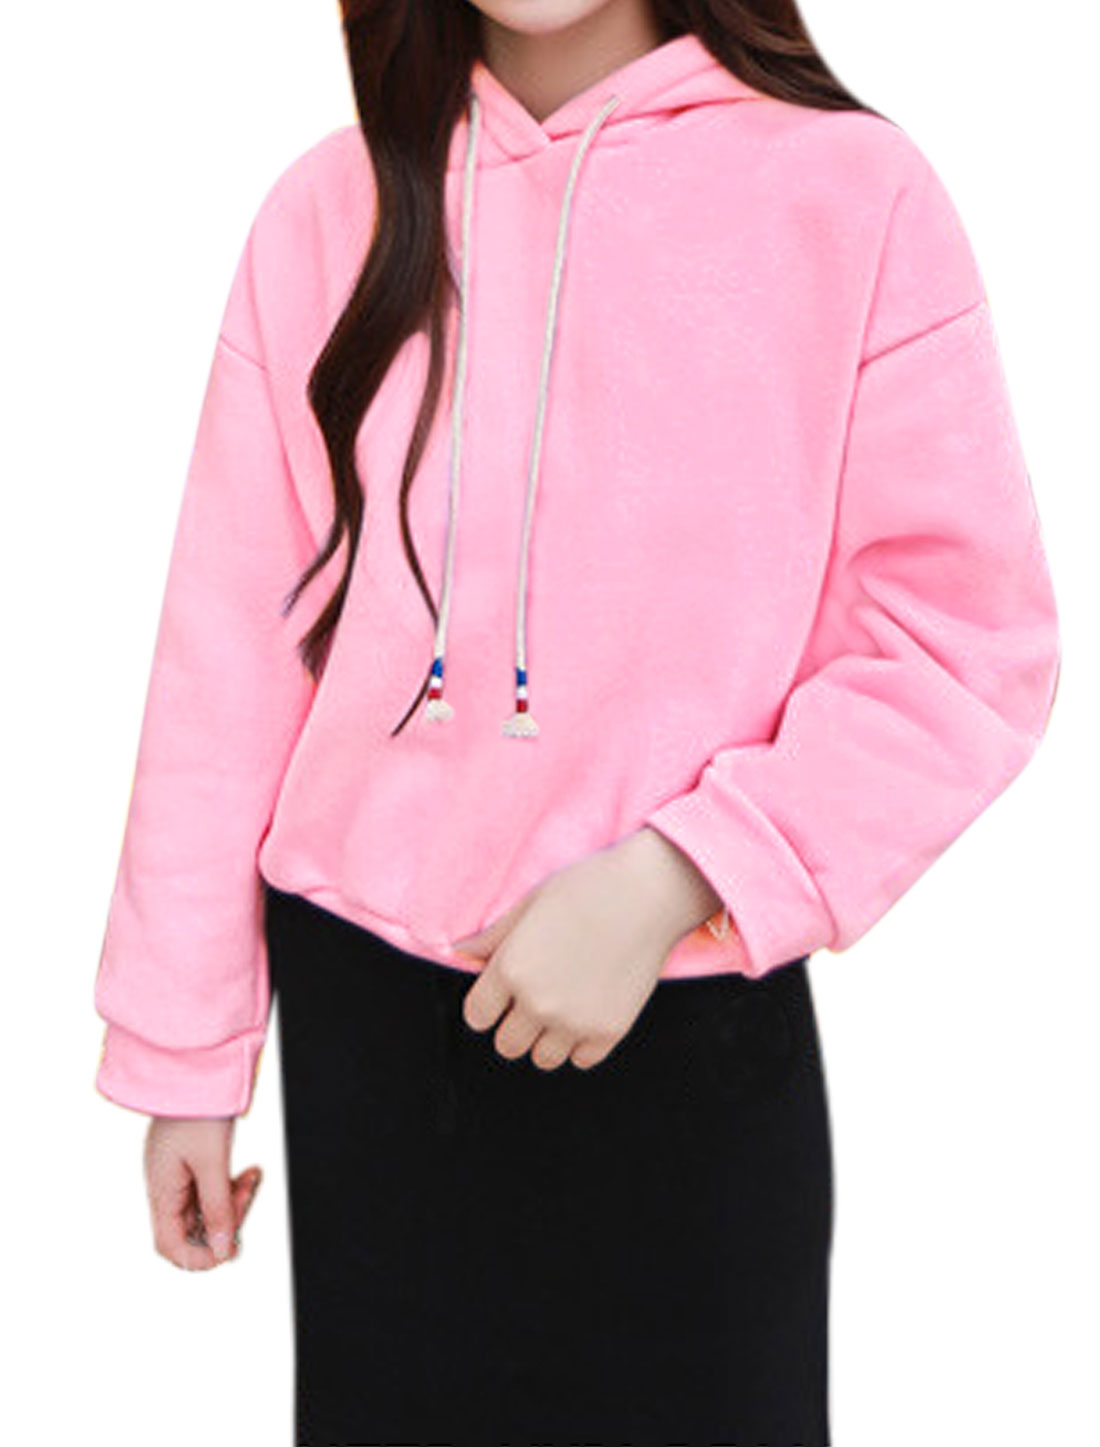 Lady Long Dolman Sleeves Soft Lining Casual Hooded Tee Shirt Pink XS